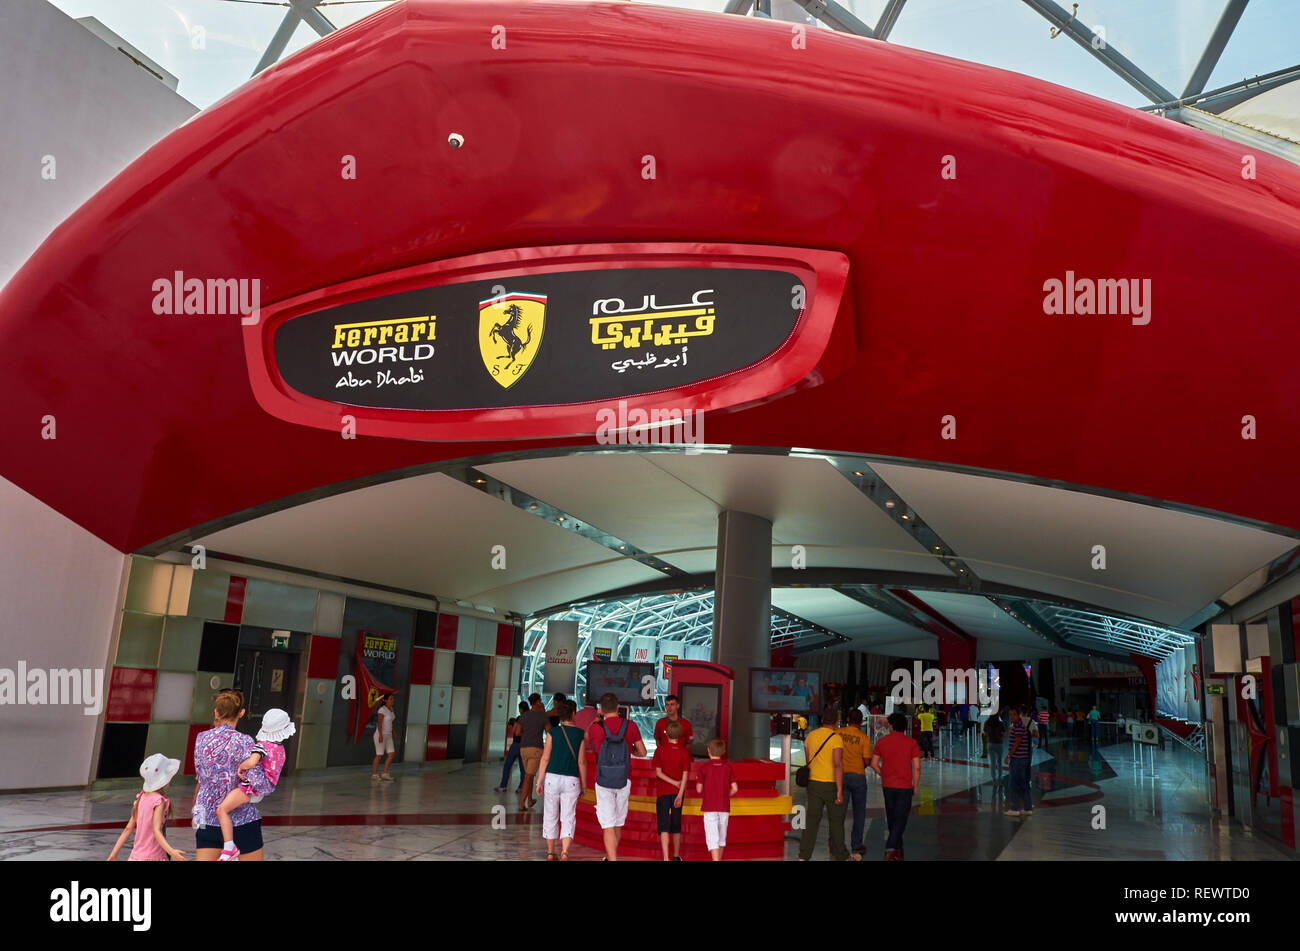 nside Ferrari World at Yas Island in Abu Dhabi in the United Arad Emirates. Ferrari World is the largest indoor amusement park in the world. - Stock Image